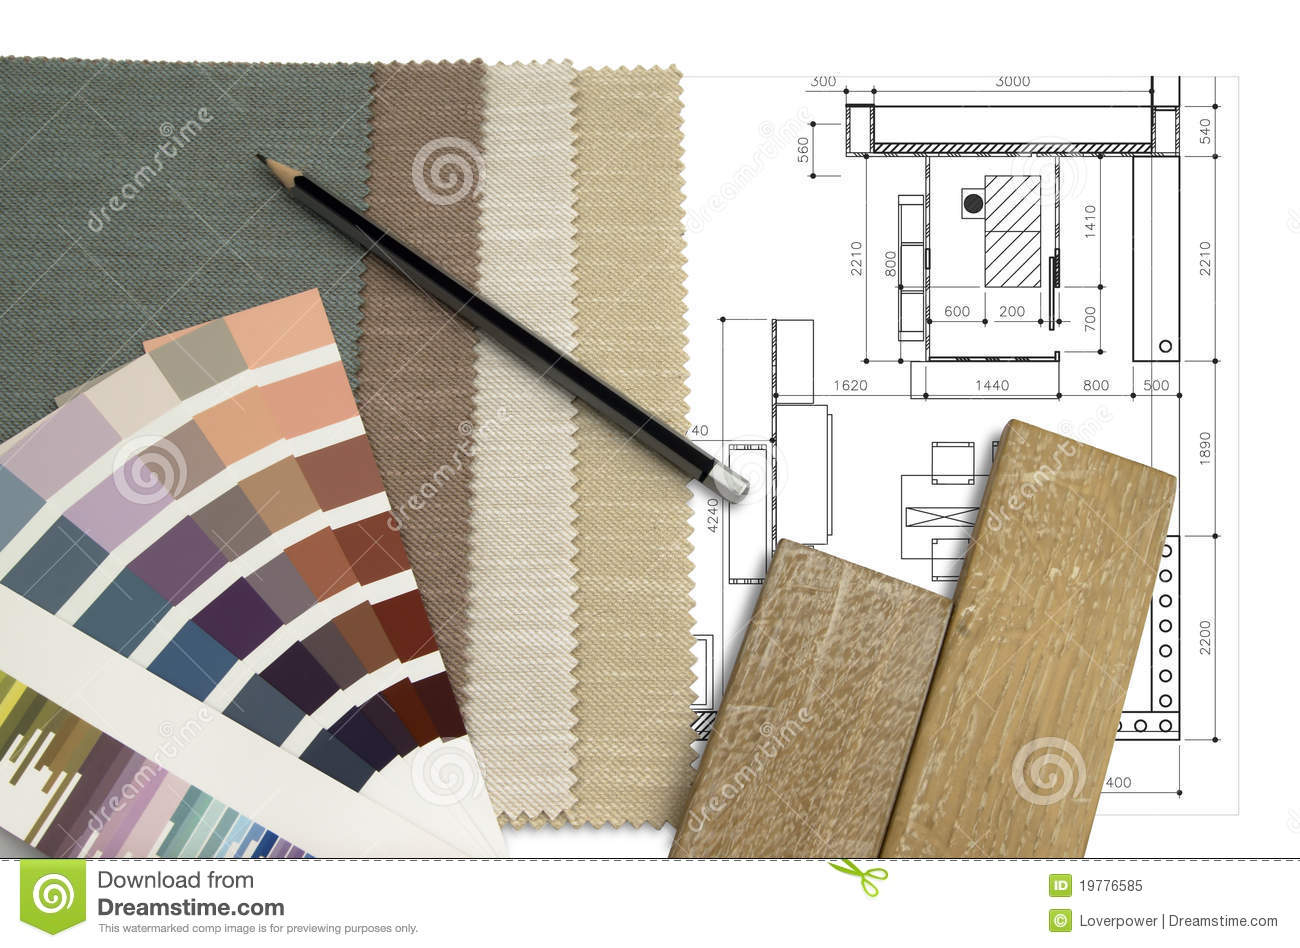 Worktable interior design royalty free stock photo image for Image of interior design